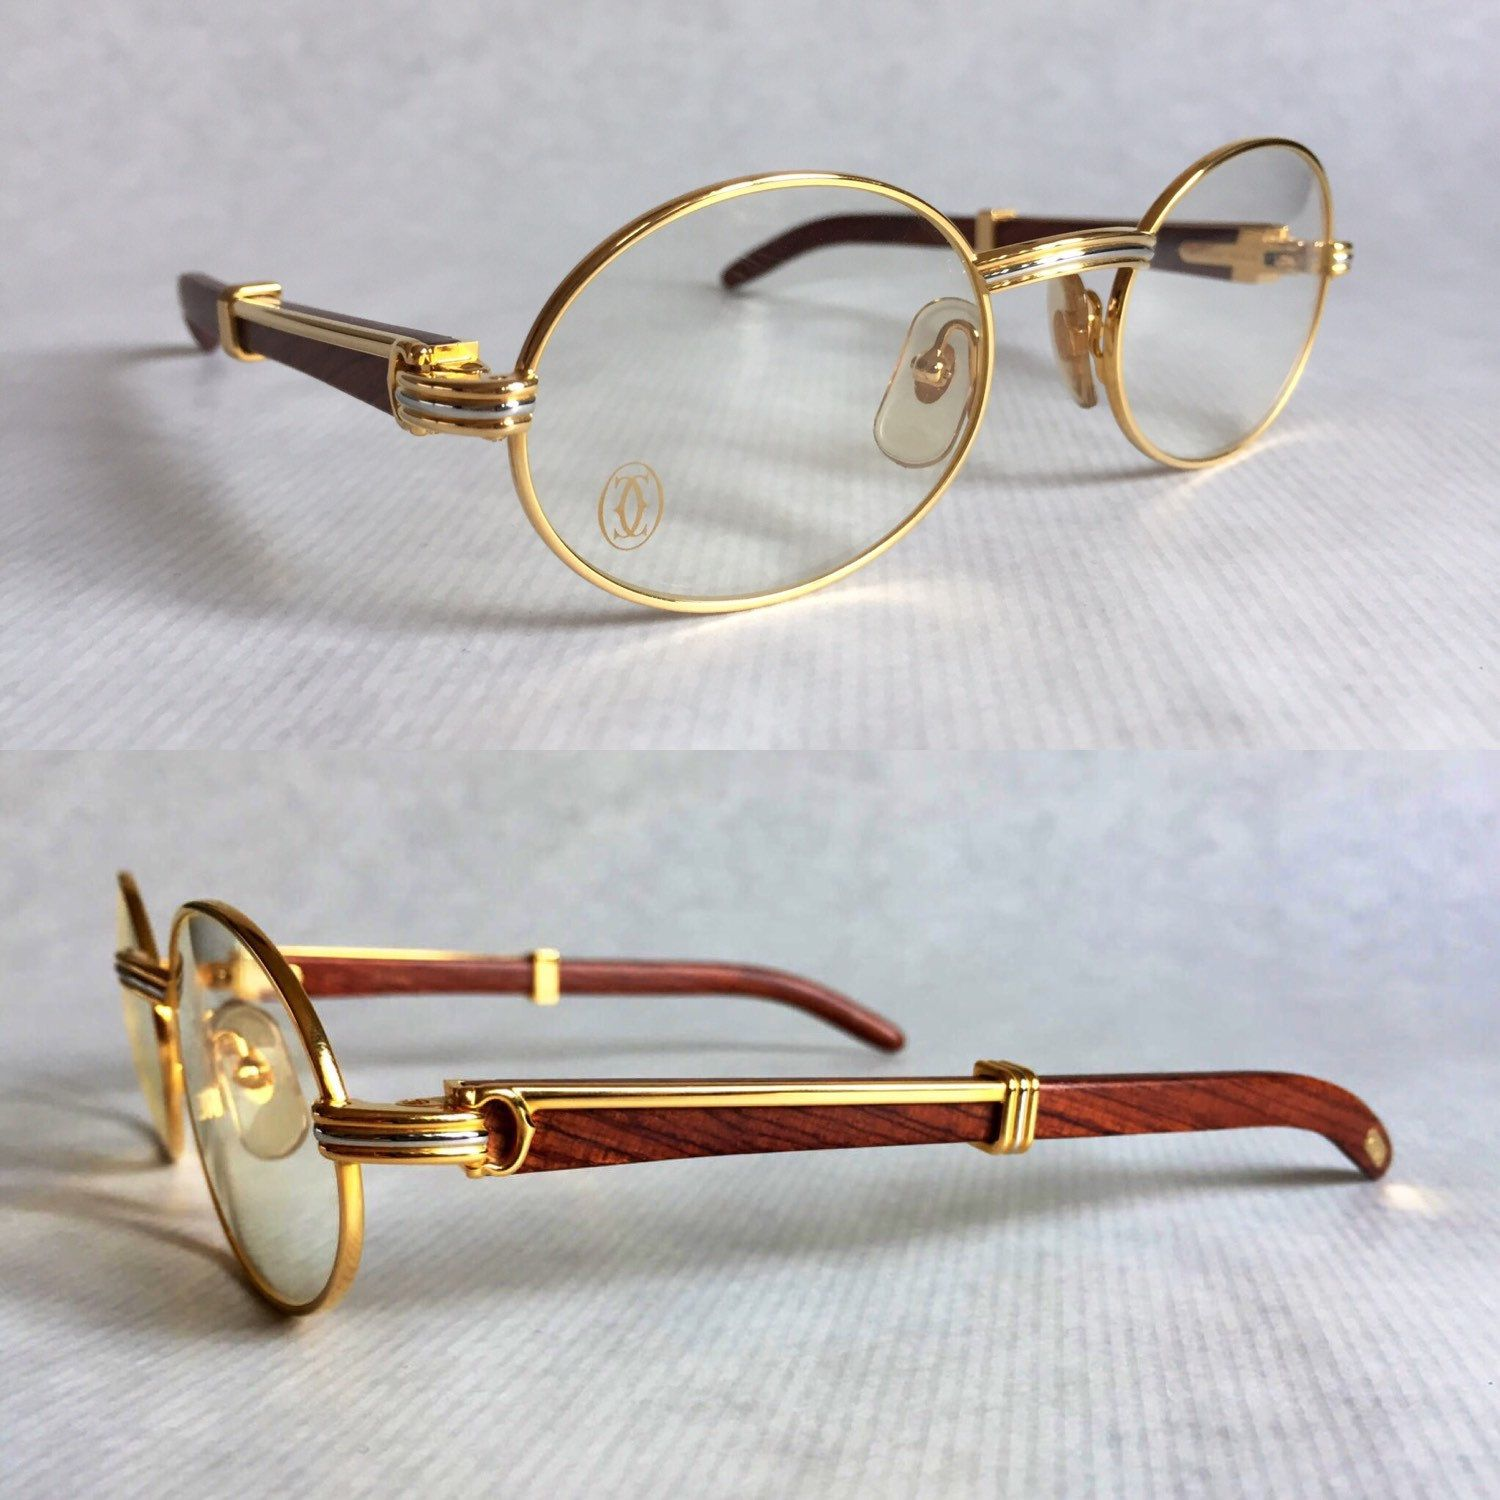 b3fdd34665 Santos wood | Jewelry in 2019 | Lunettes, Lunette cartier, Lunette optique